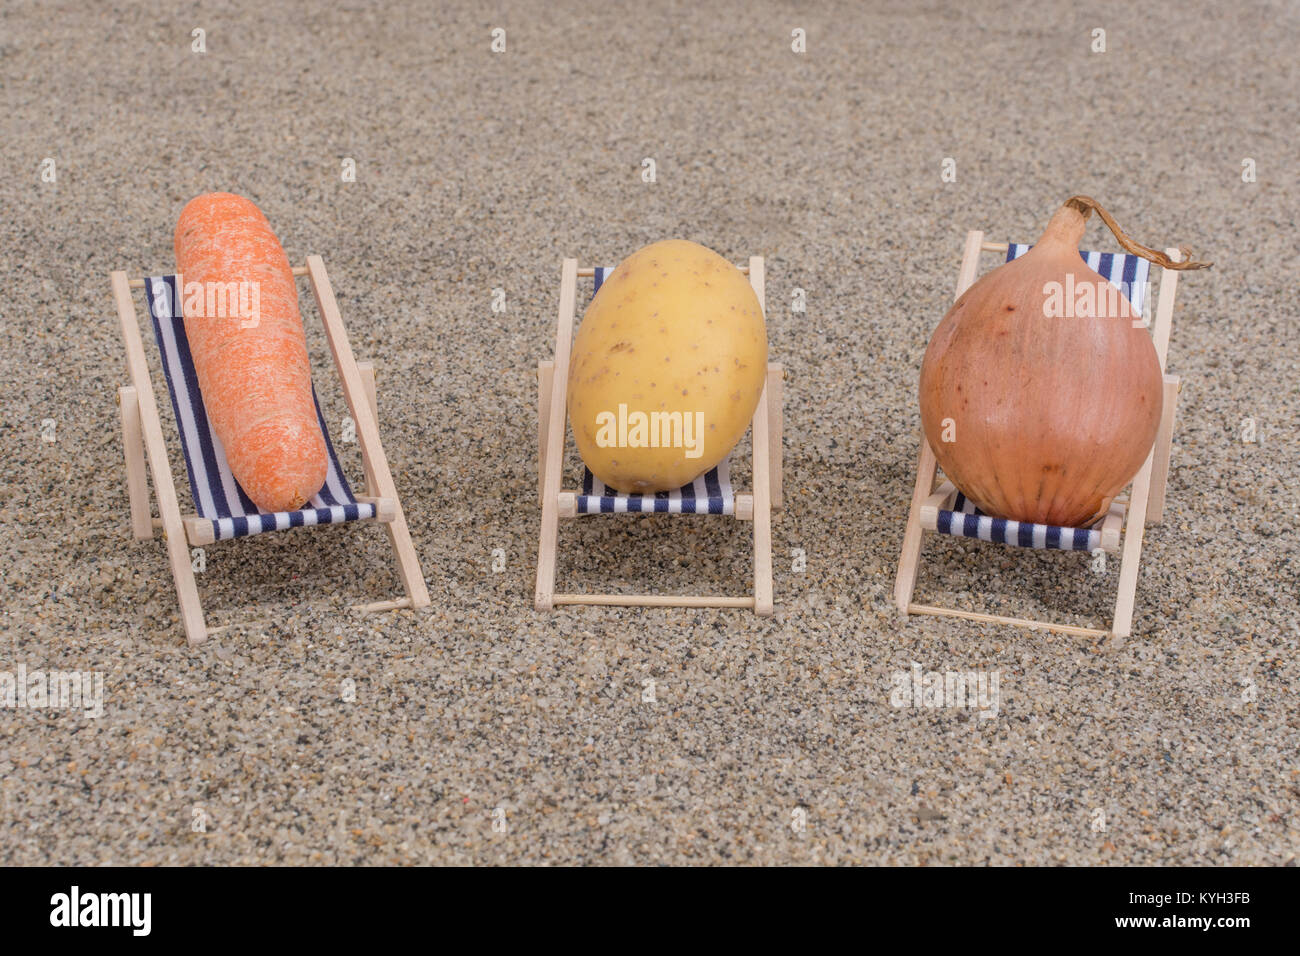 New potato, small carrot and onion on toy deckchairs on sand - as visual metaphor for concept of 'couch potato' - Stock Image